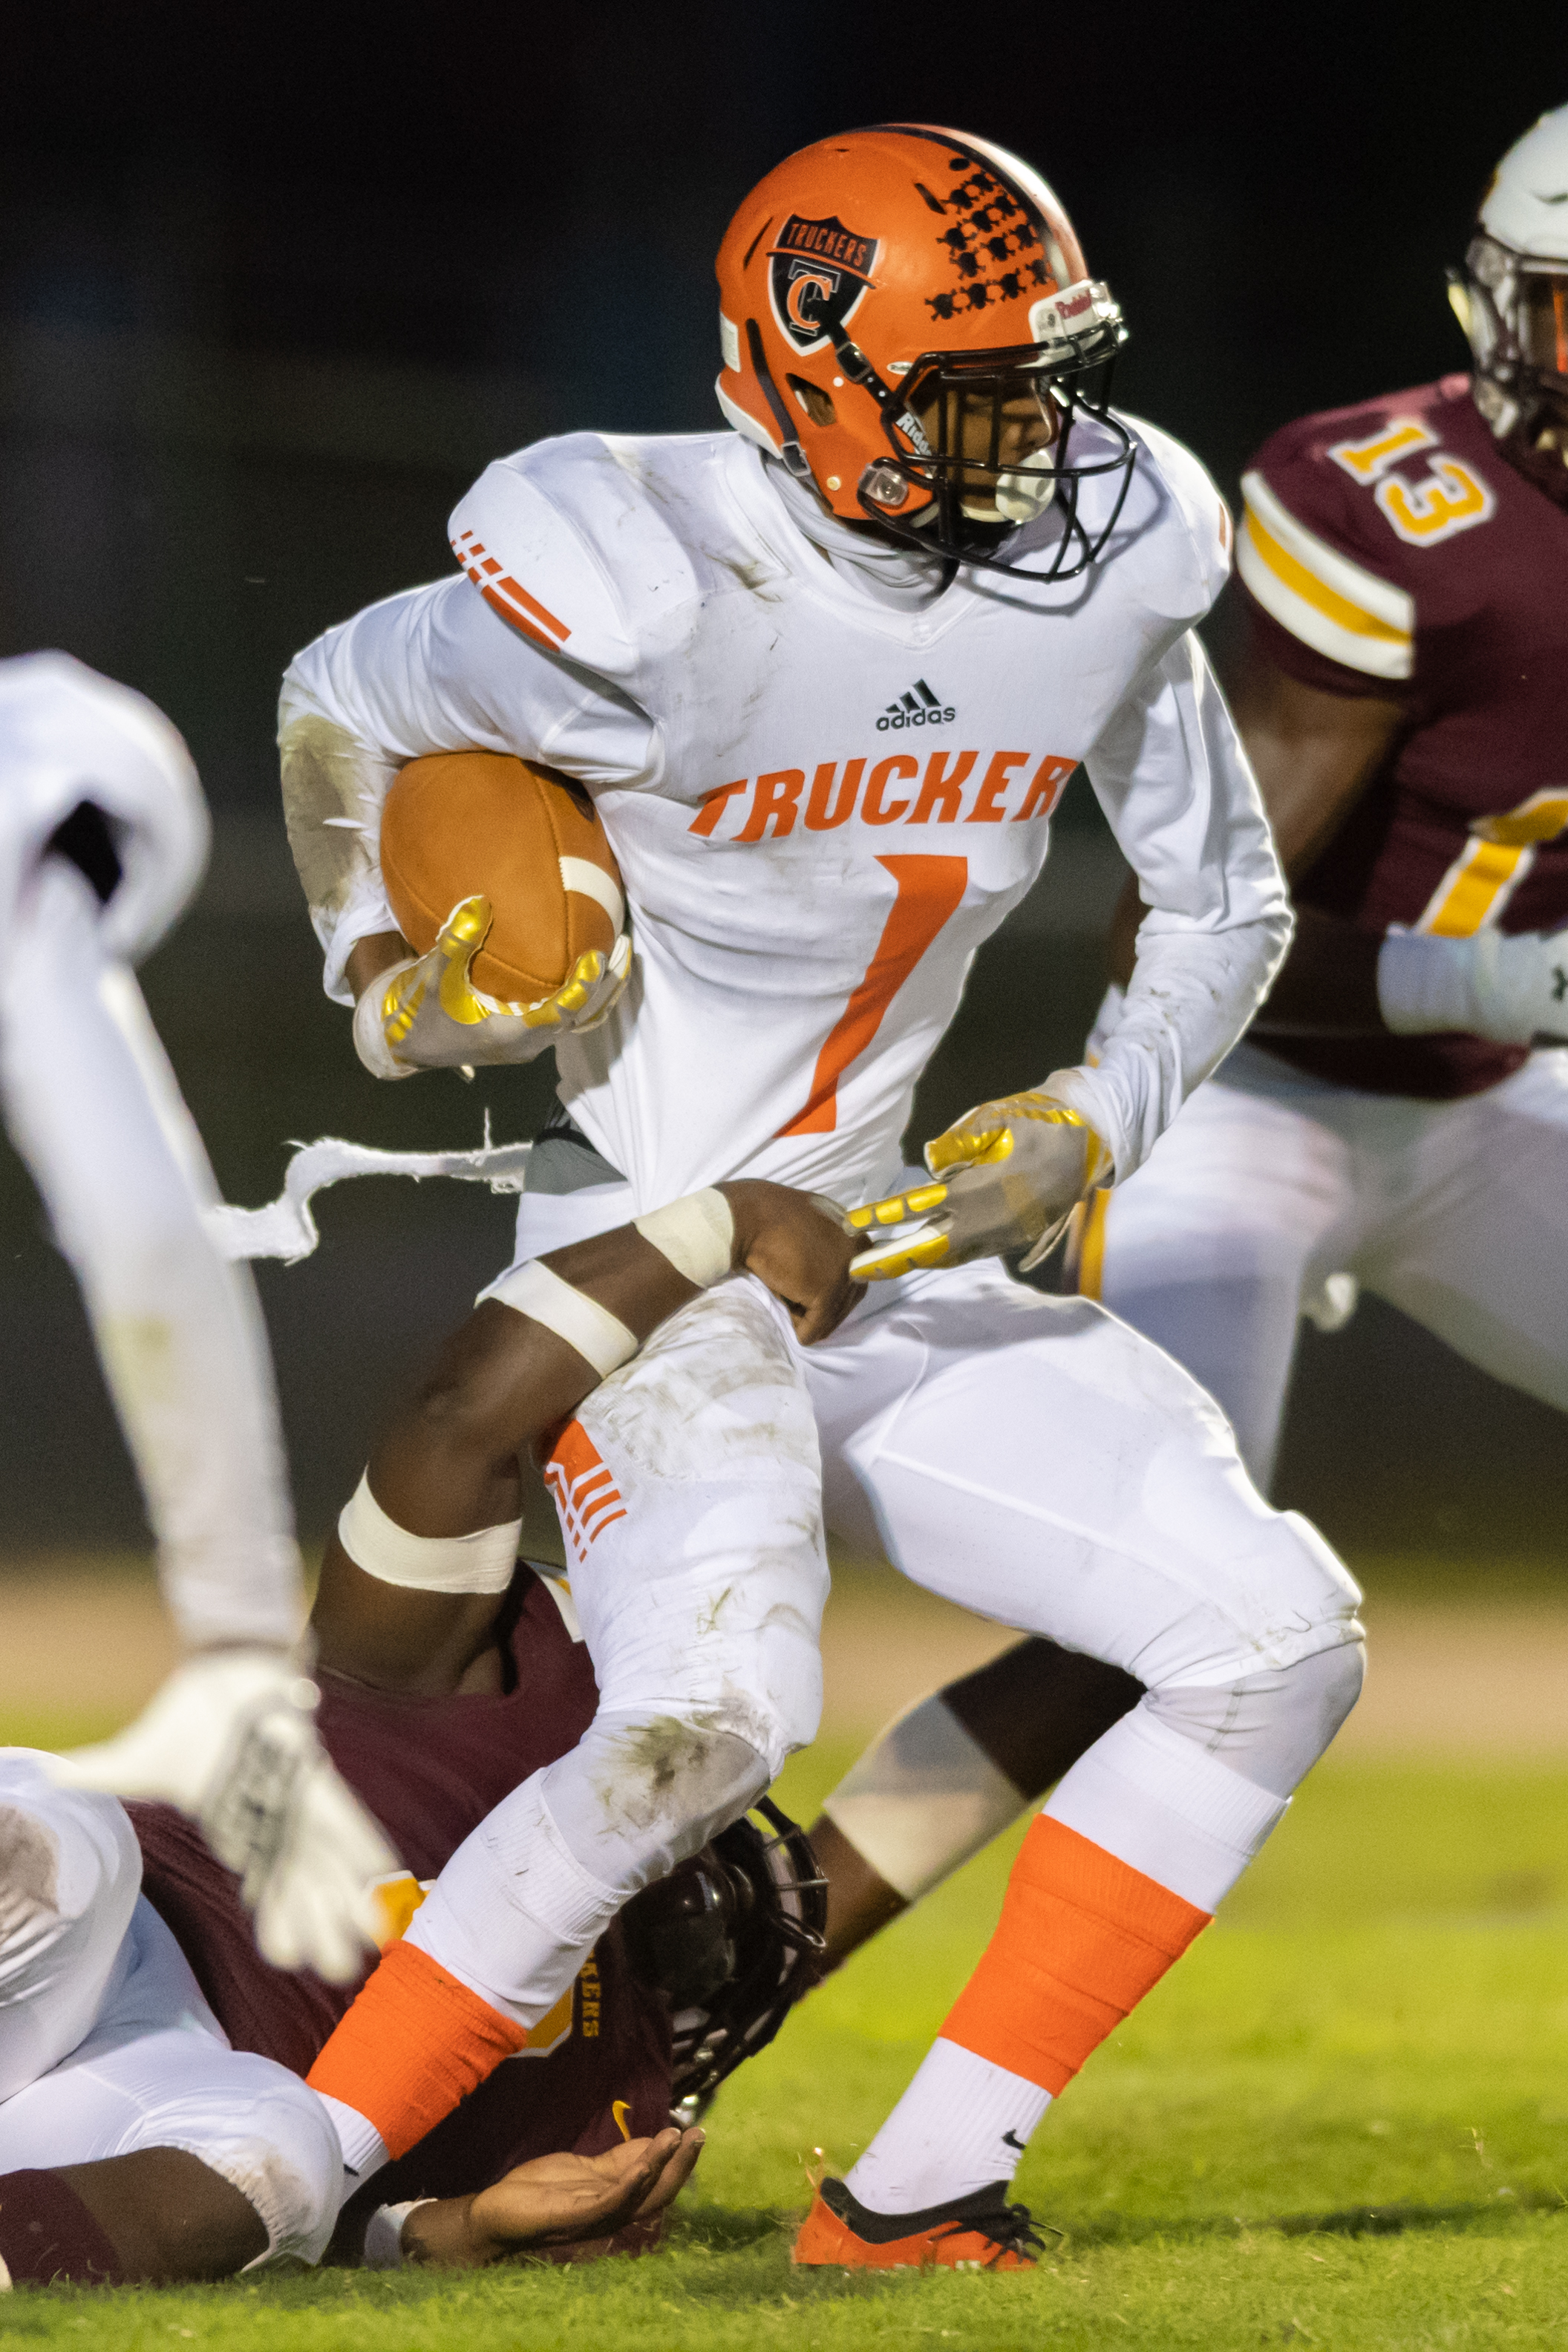 Churchland's Isaiah Nixon runs the ball against Booker T Washington during the Friday, September 28, 2018 game at Booker T Washington High School. Booker T Washington leads Churchland 21 to 6 in the second quarter.